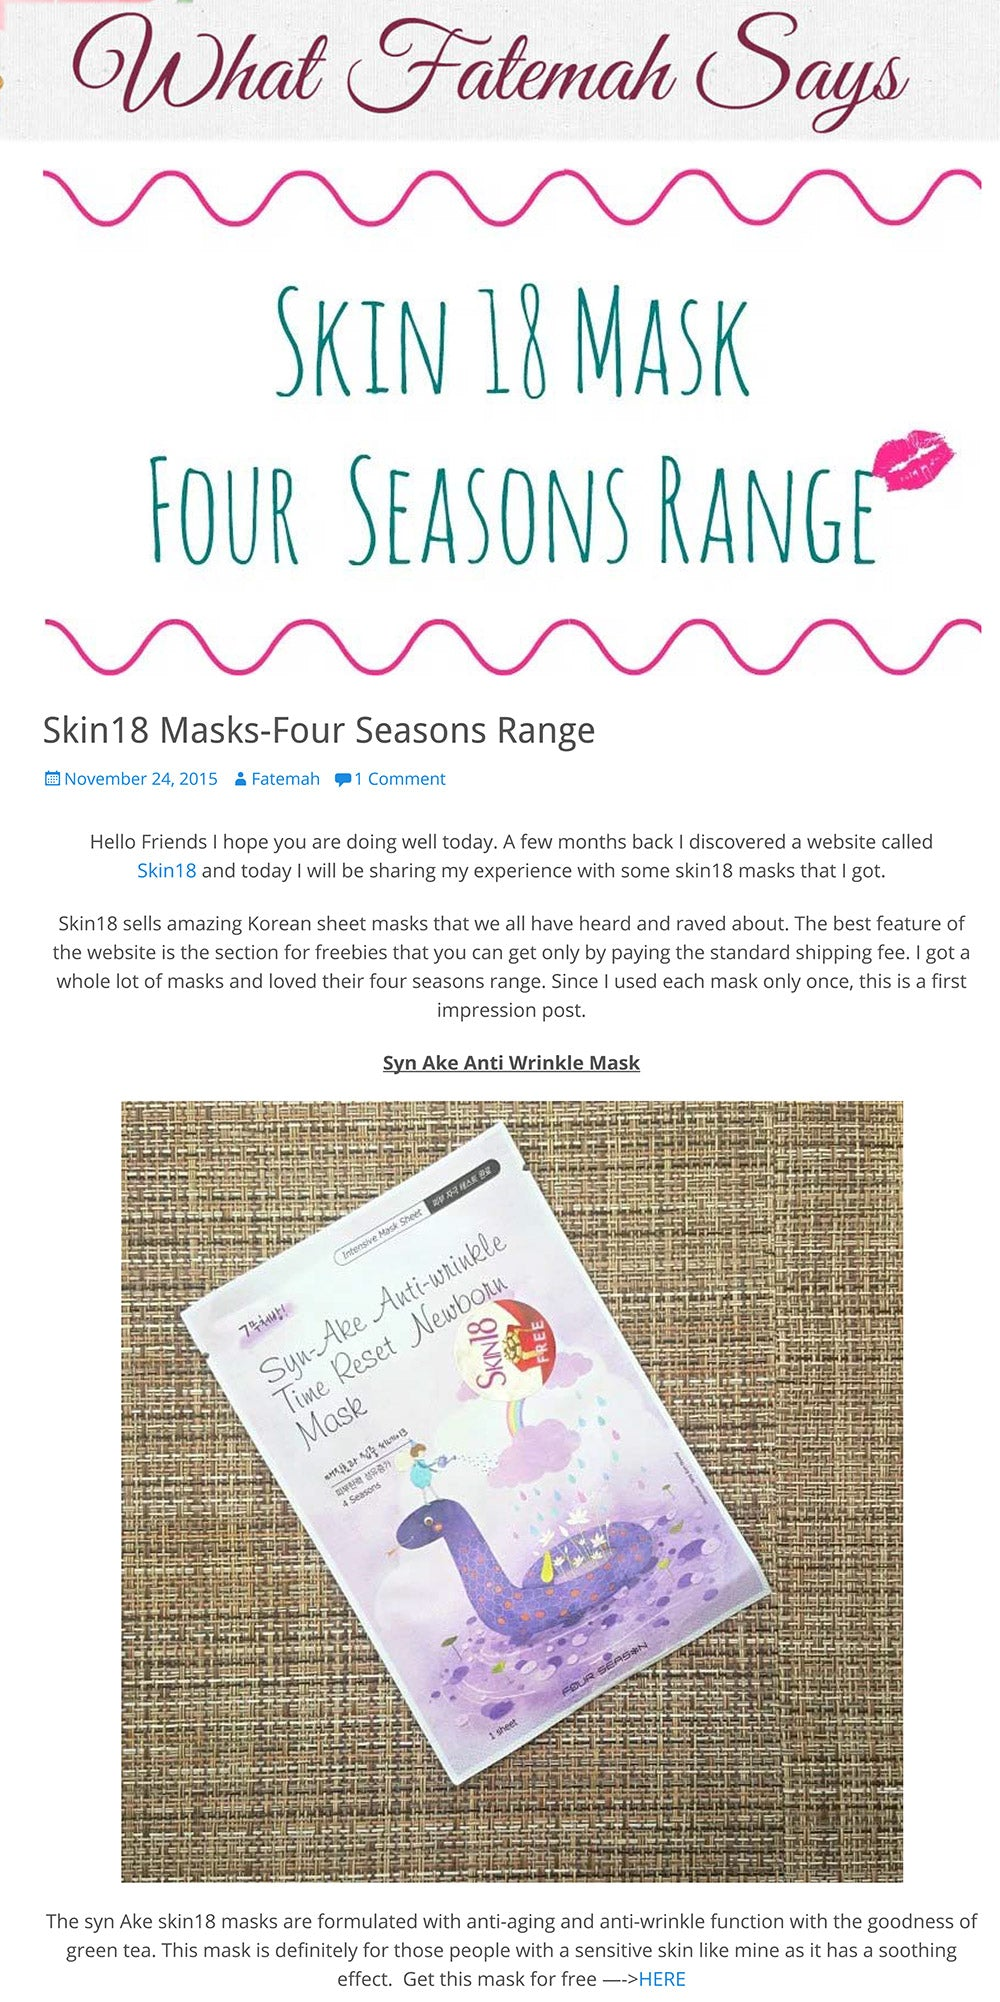 Skin18 Masks-Four Seasons Range